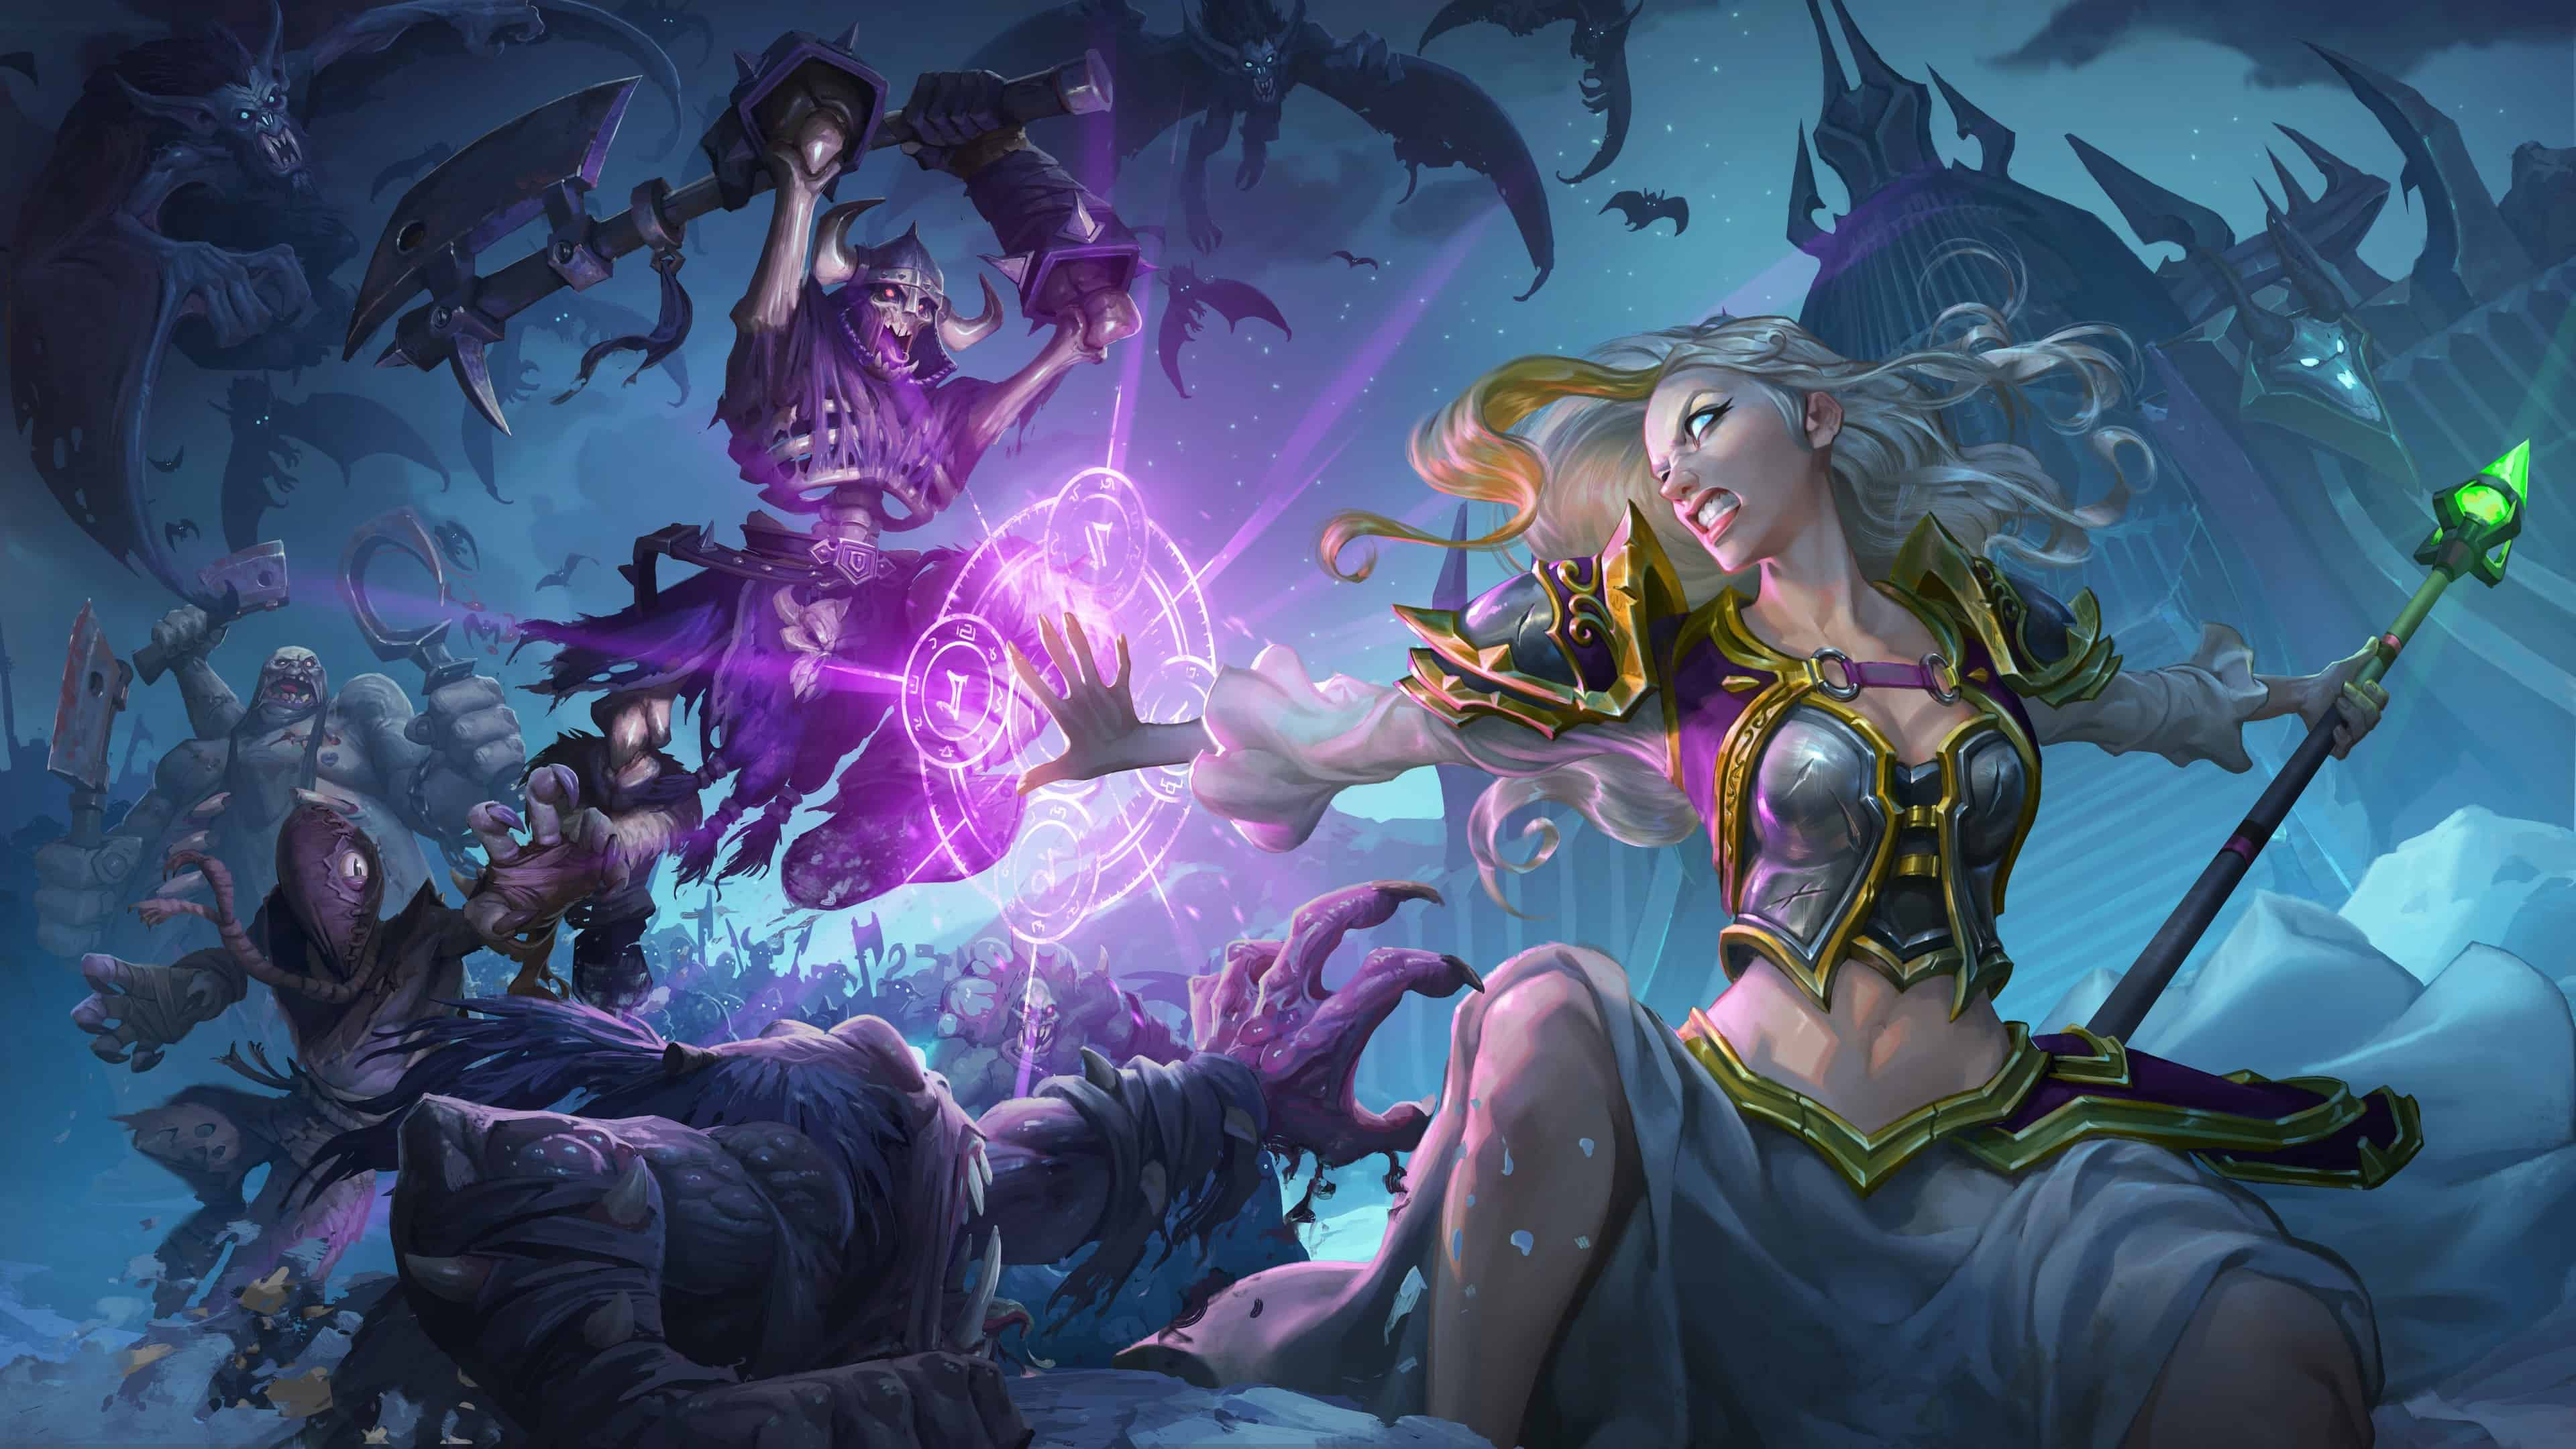 Hearthstone Wallpaper 4k The Best Hd Wallpaper